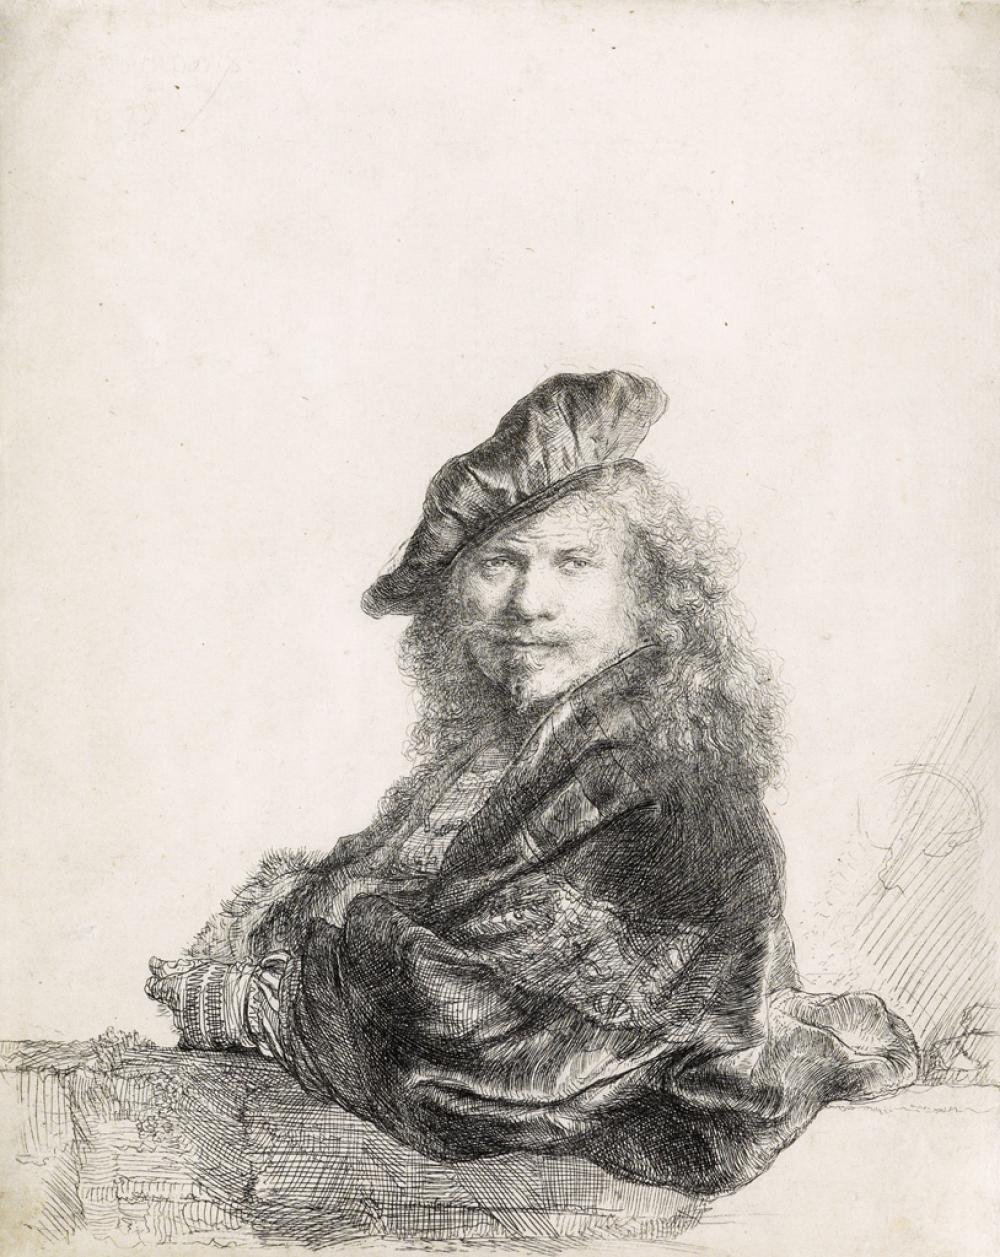 REMBRANDT VAN RIJN Self Portrait Leaning on a Stone Sill.